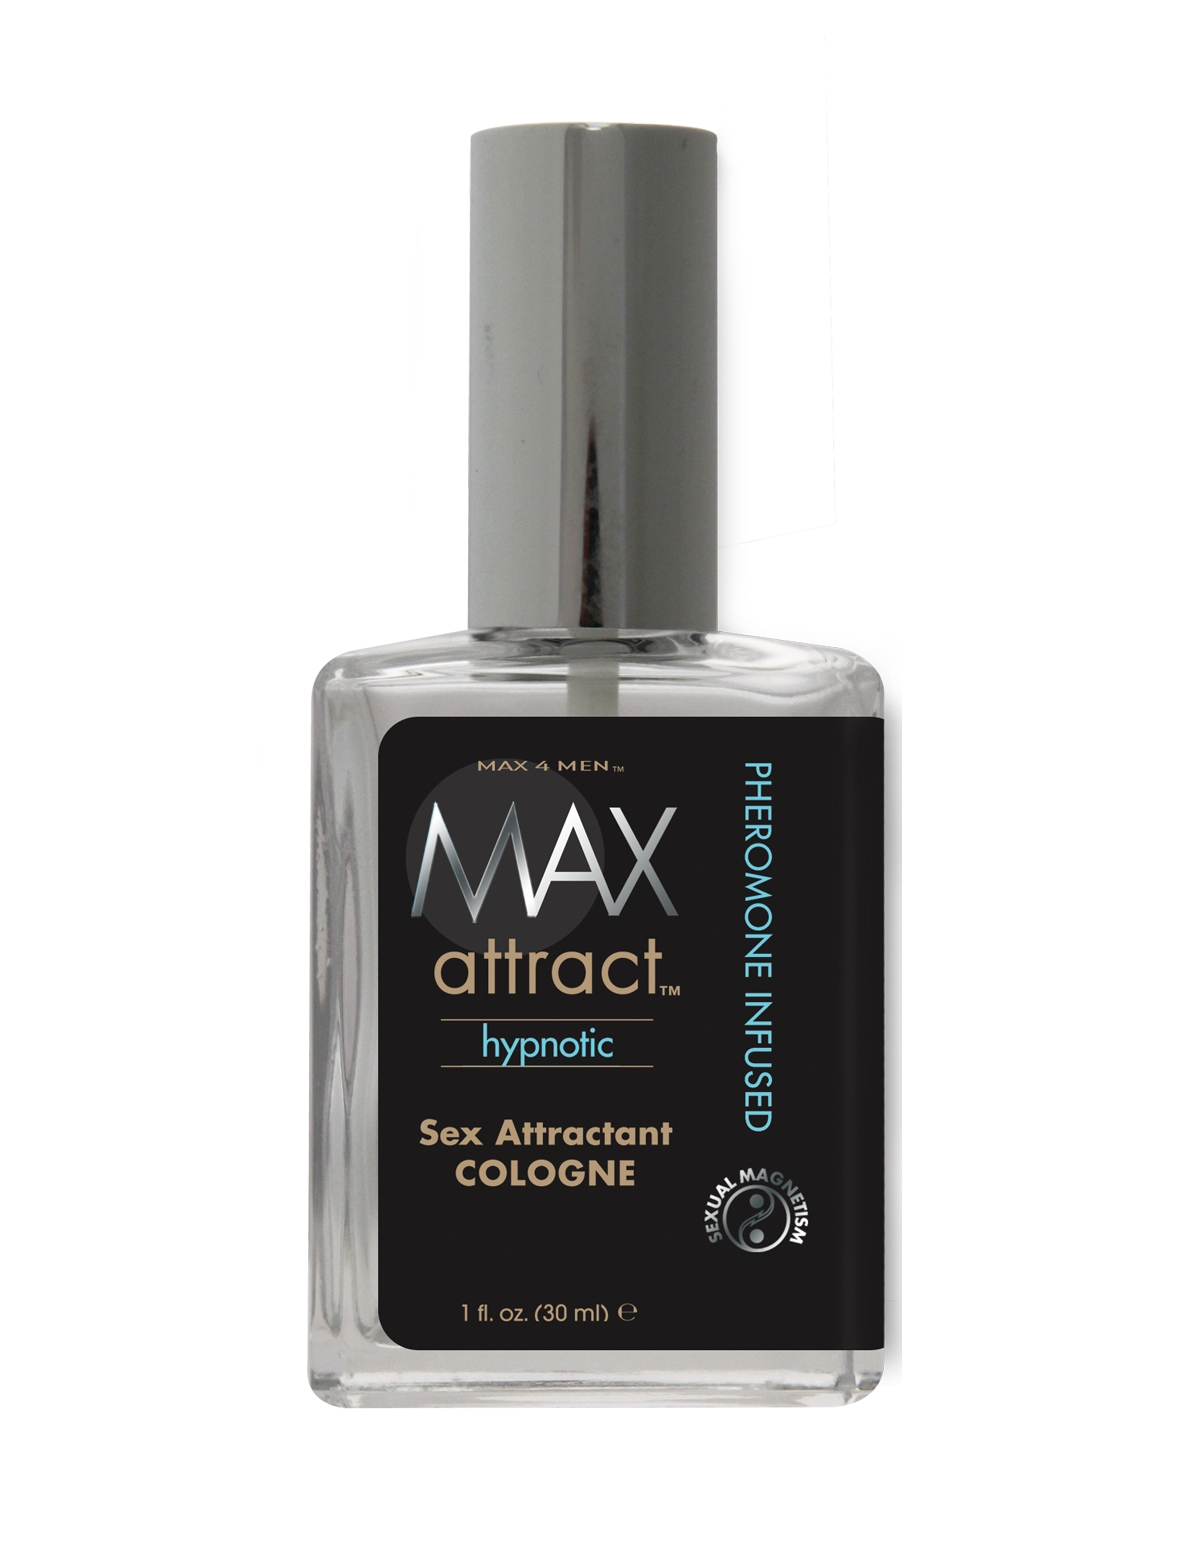 Max Attract Pheromone Cologne